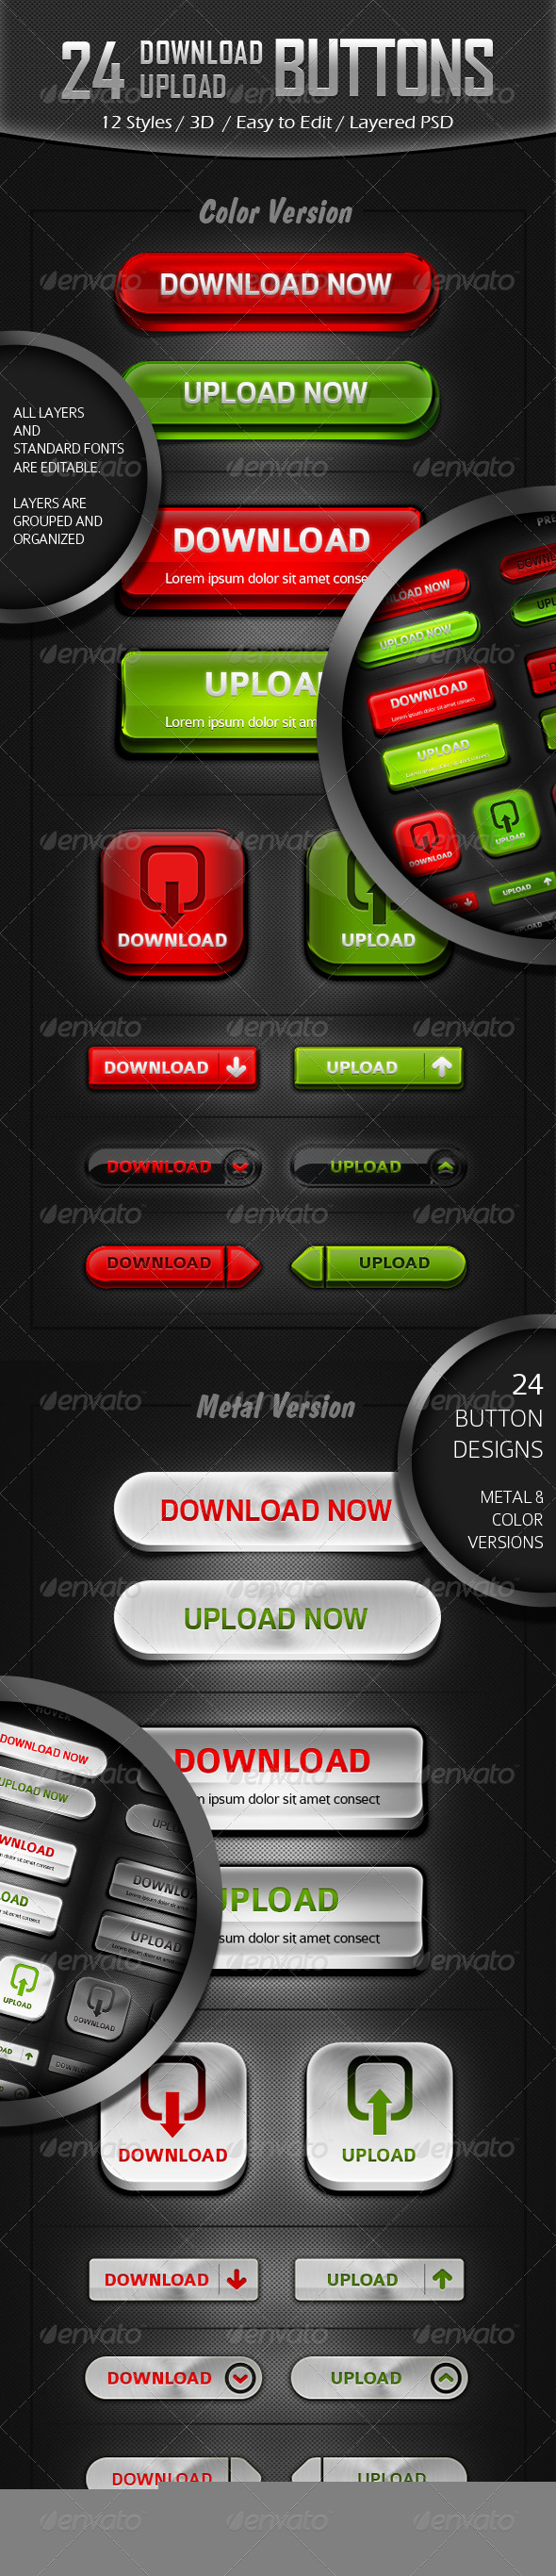 GraphicRiver 12 Styles Download Upload Button Designs 4730596